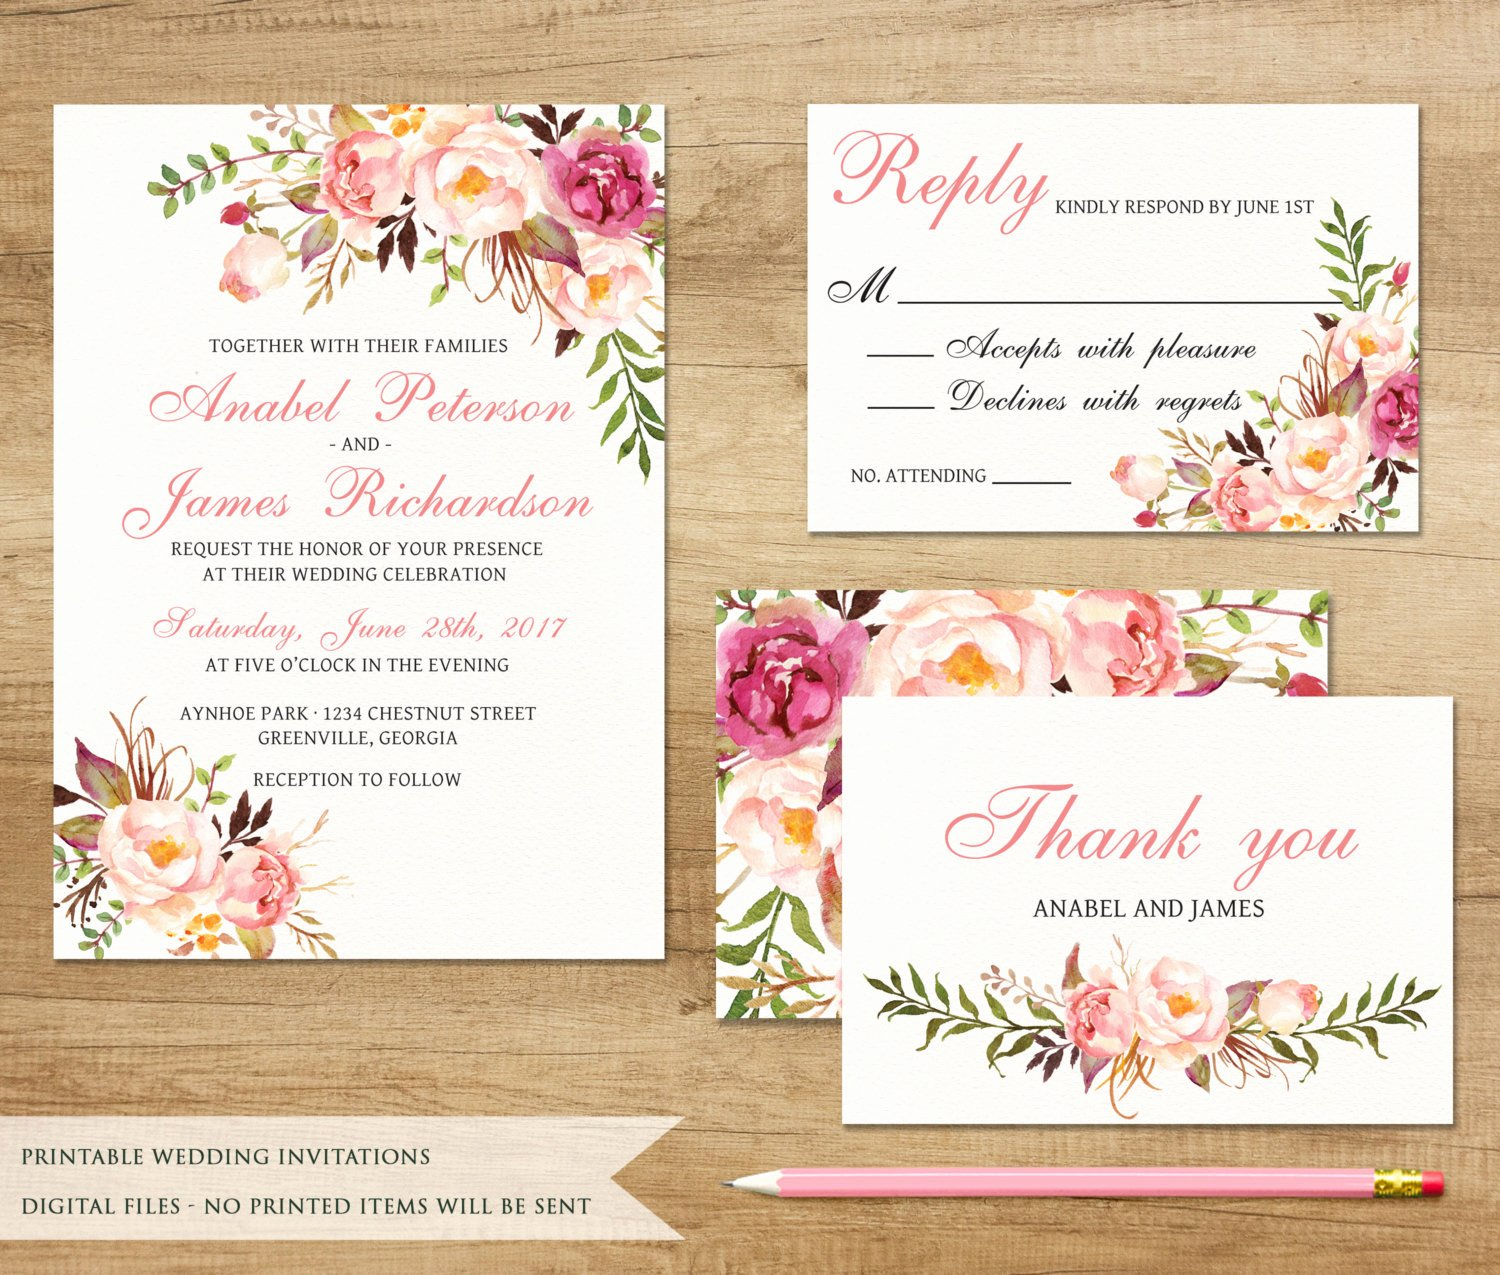 Printable Wedding Invitations Template Luxury Floral Wedding Invitation Printable Wedding Invitation